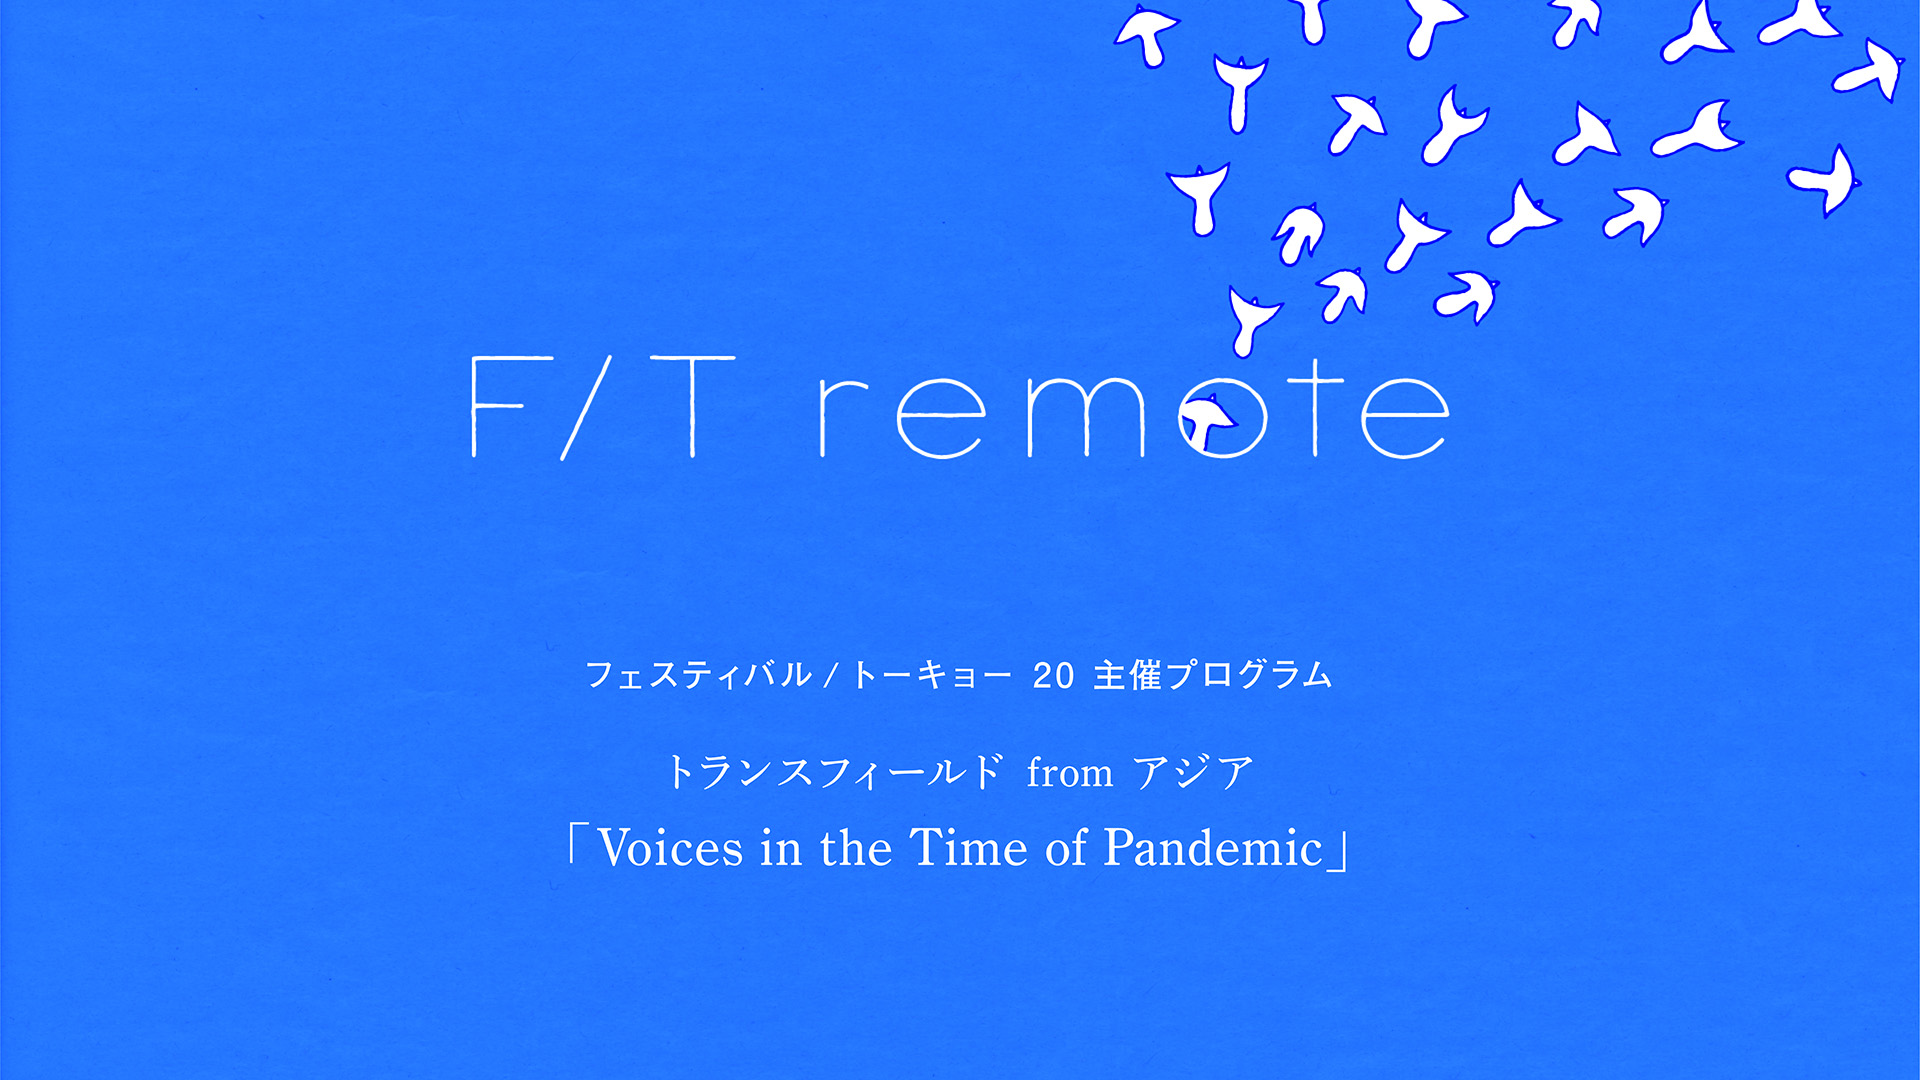 Voices in the Time of Pandemic